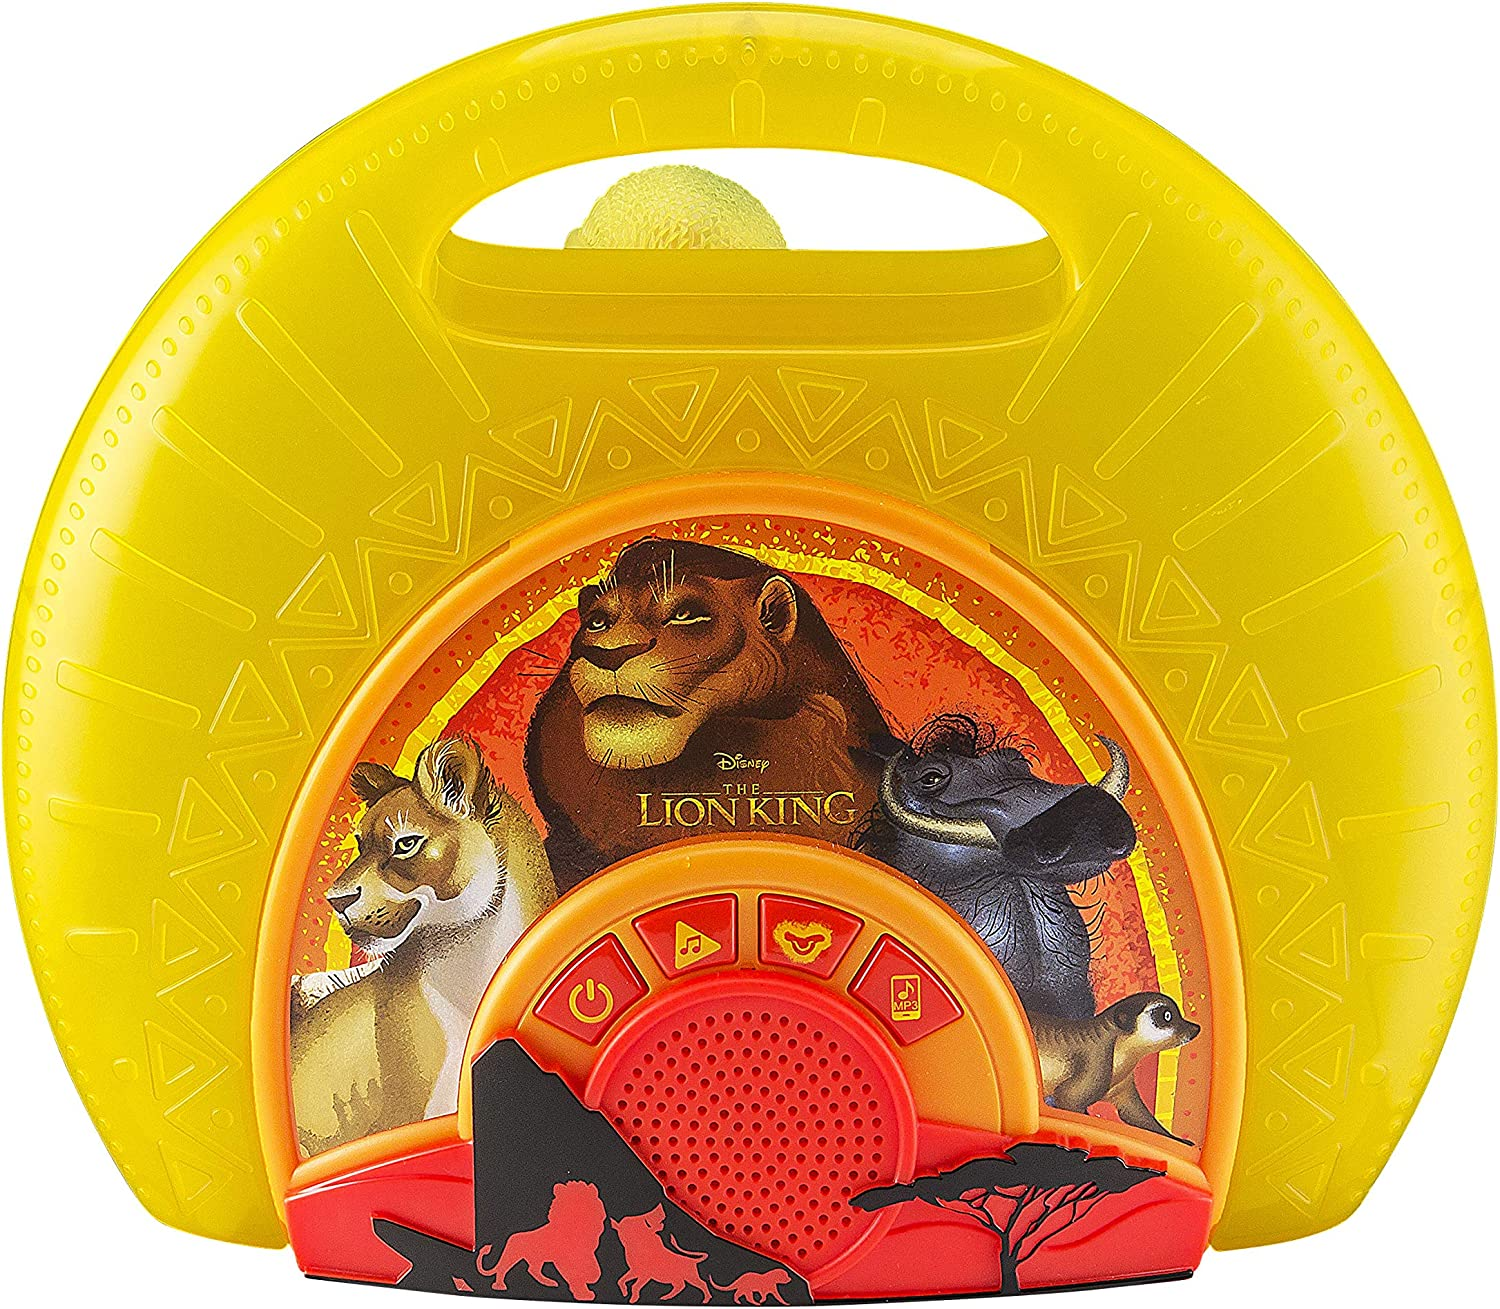 Lion King Sing Along Boombox with Microphone Built in Music Flashing Lights Real Working Mic Connects to MP3 Player Storage Compartment in Back for Audio Device